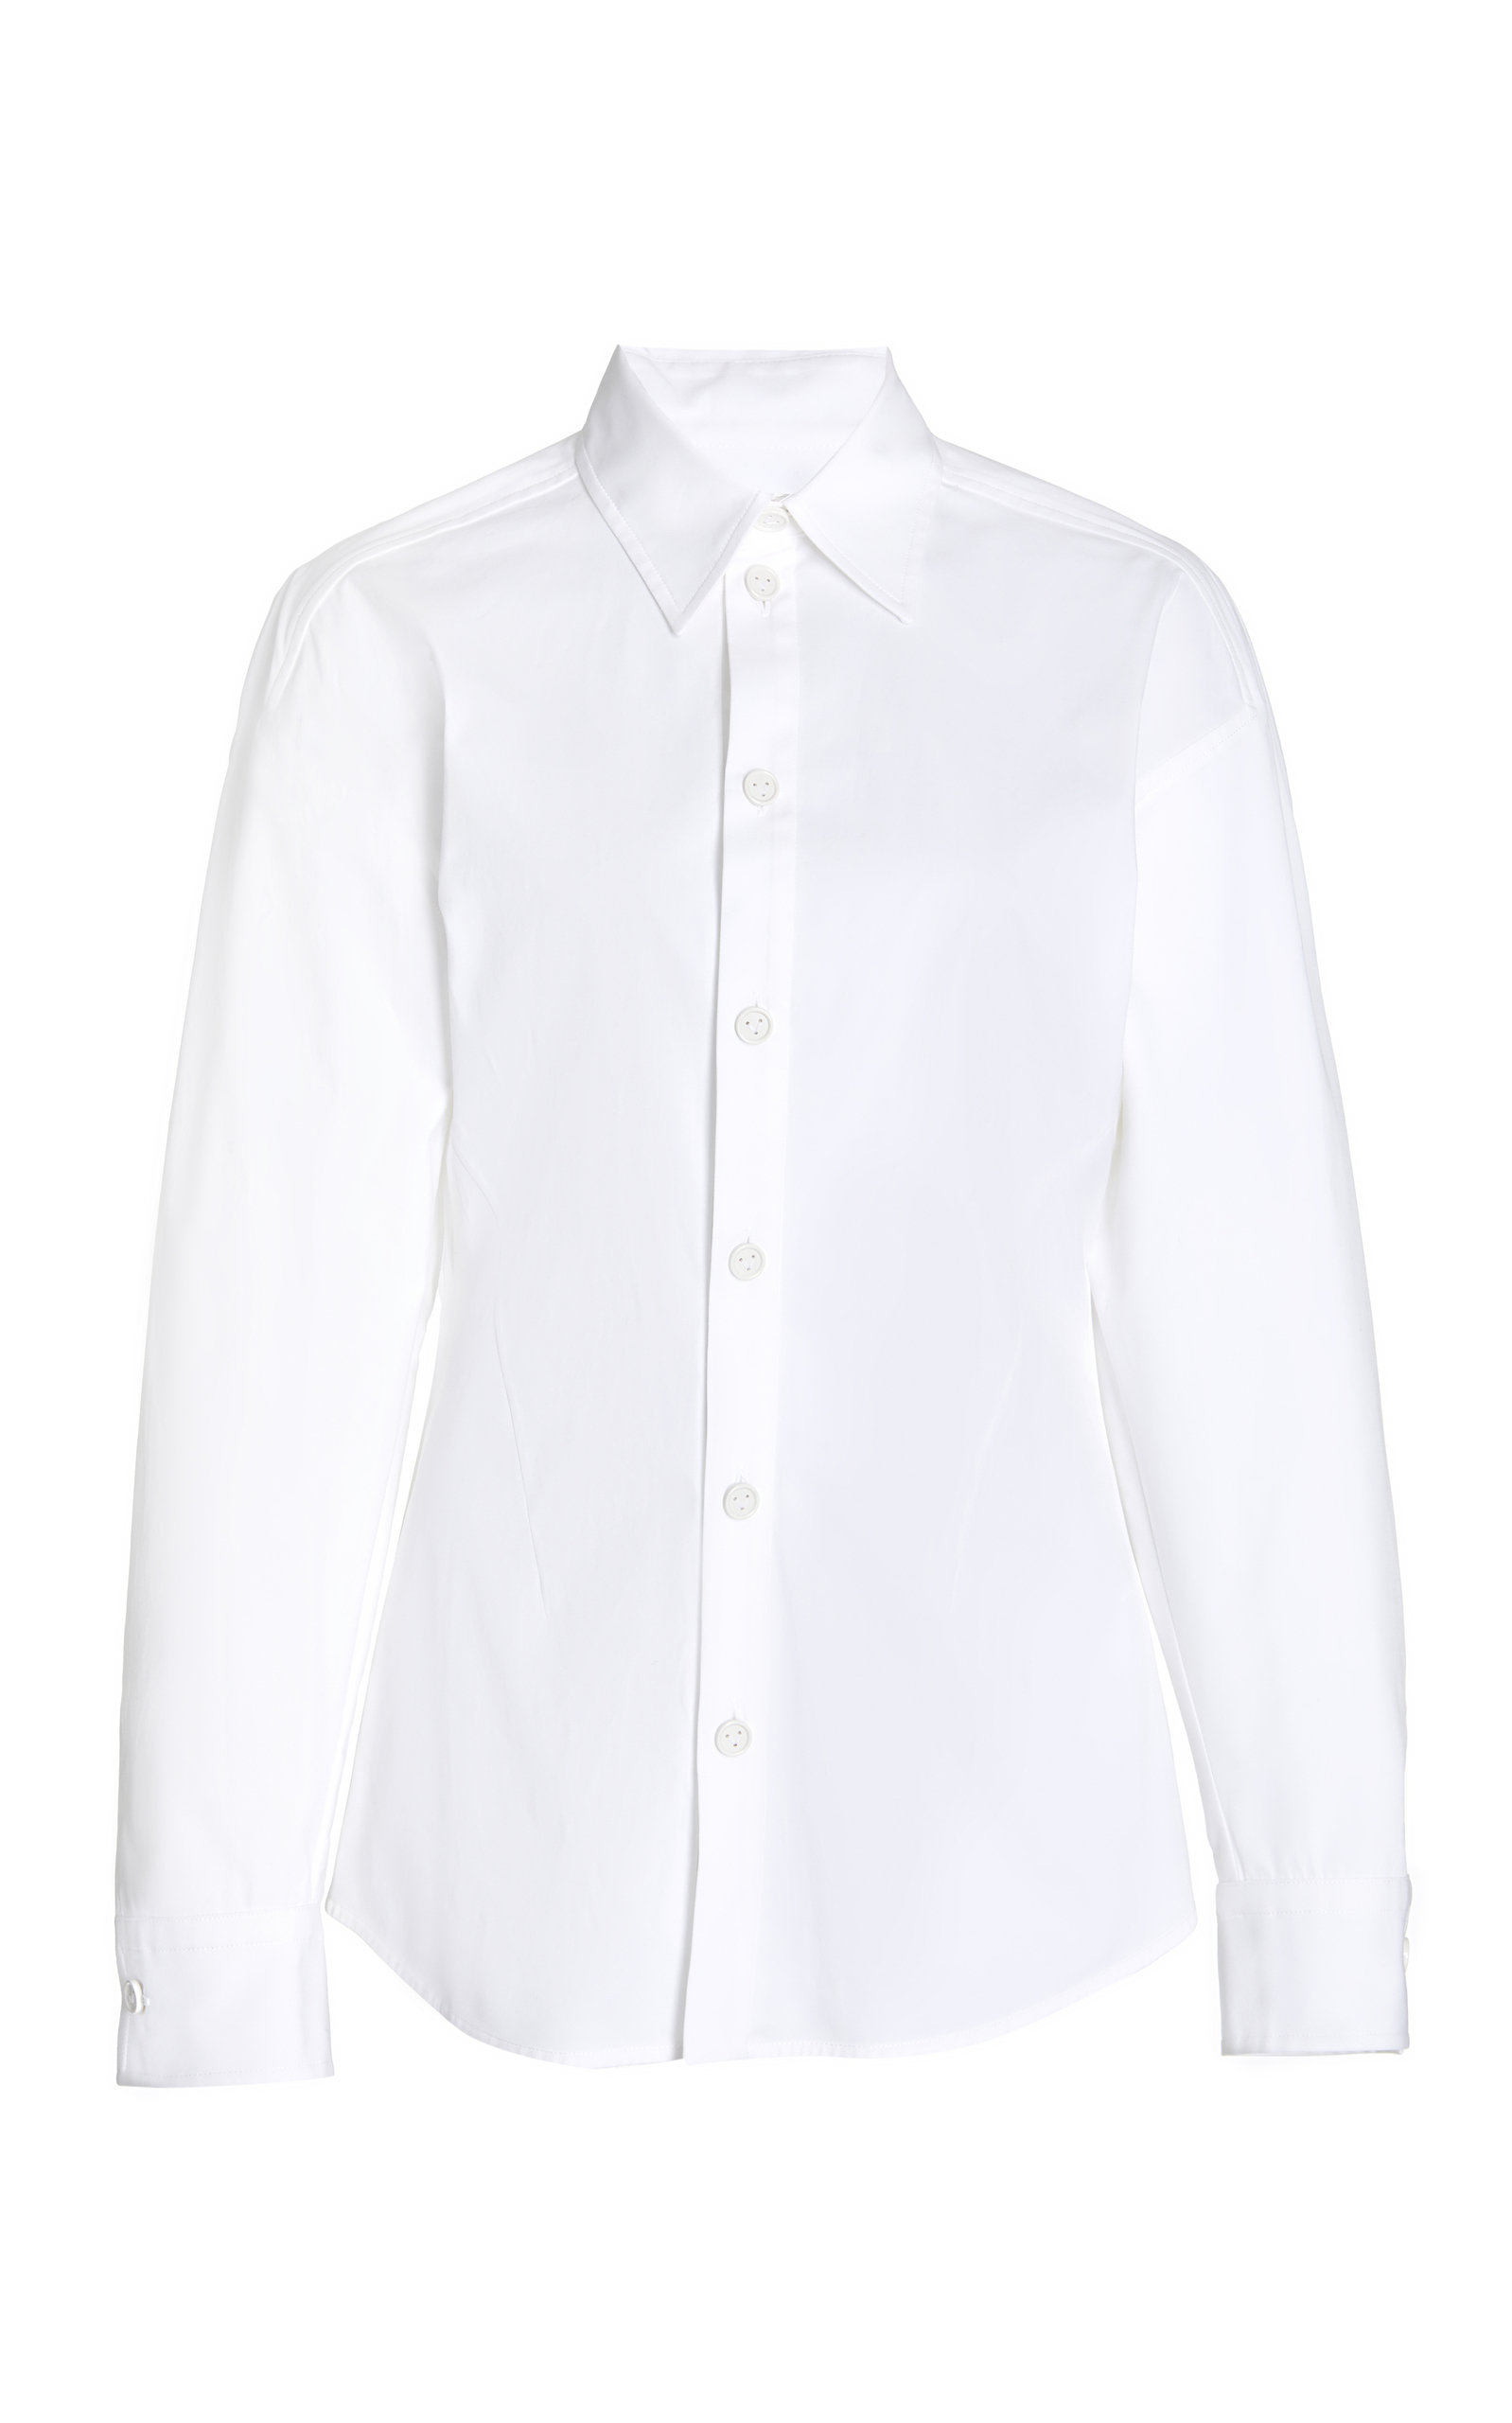 Bottega Veneta Women's Stretch Poplin Button-down Shirt In White